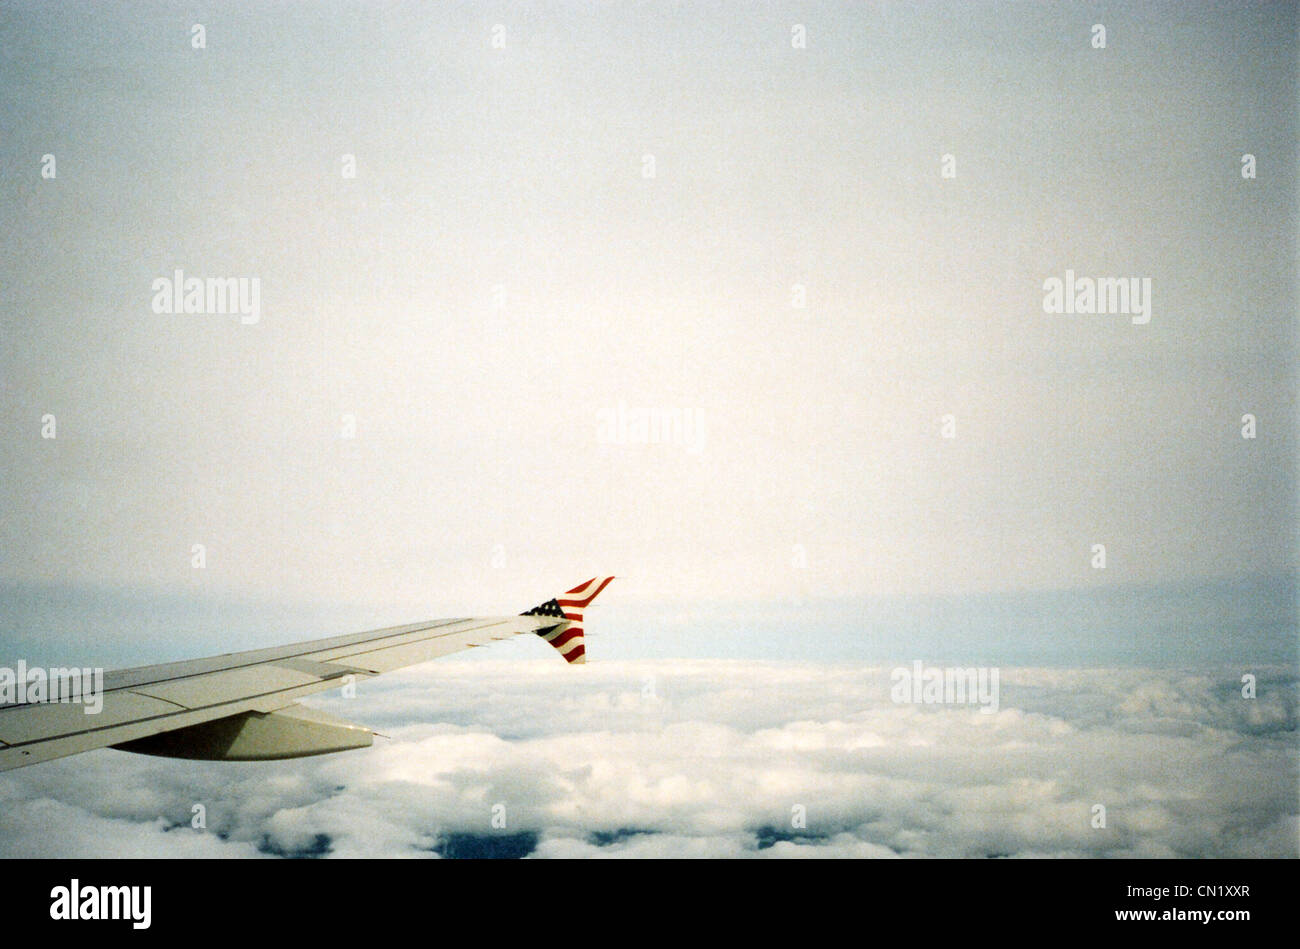 Airplane wing with US flag - Stock Image